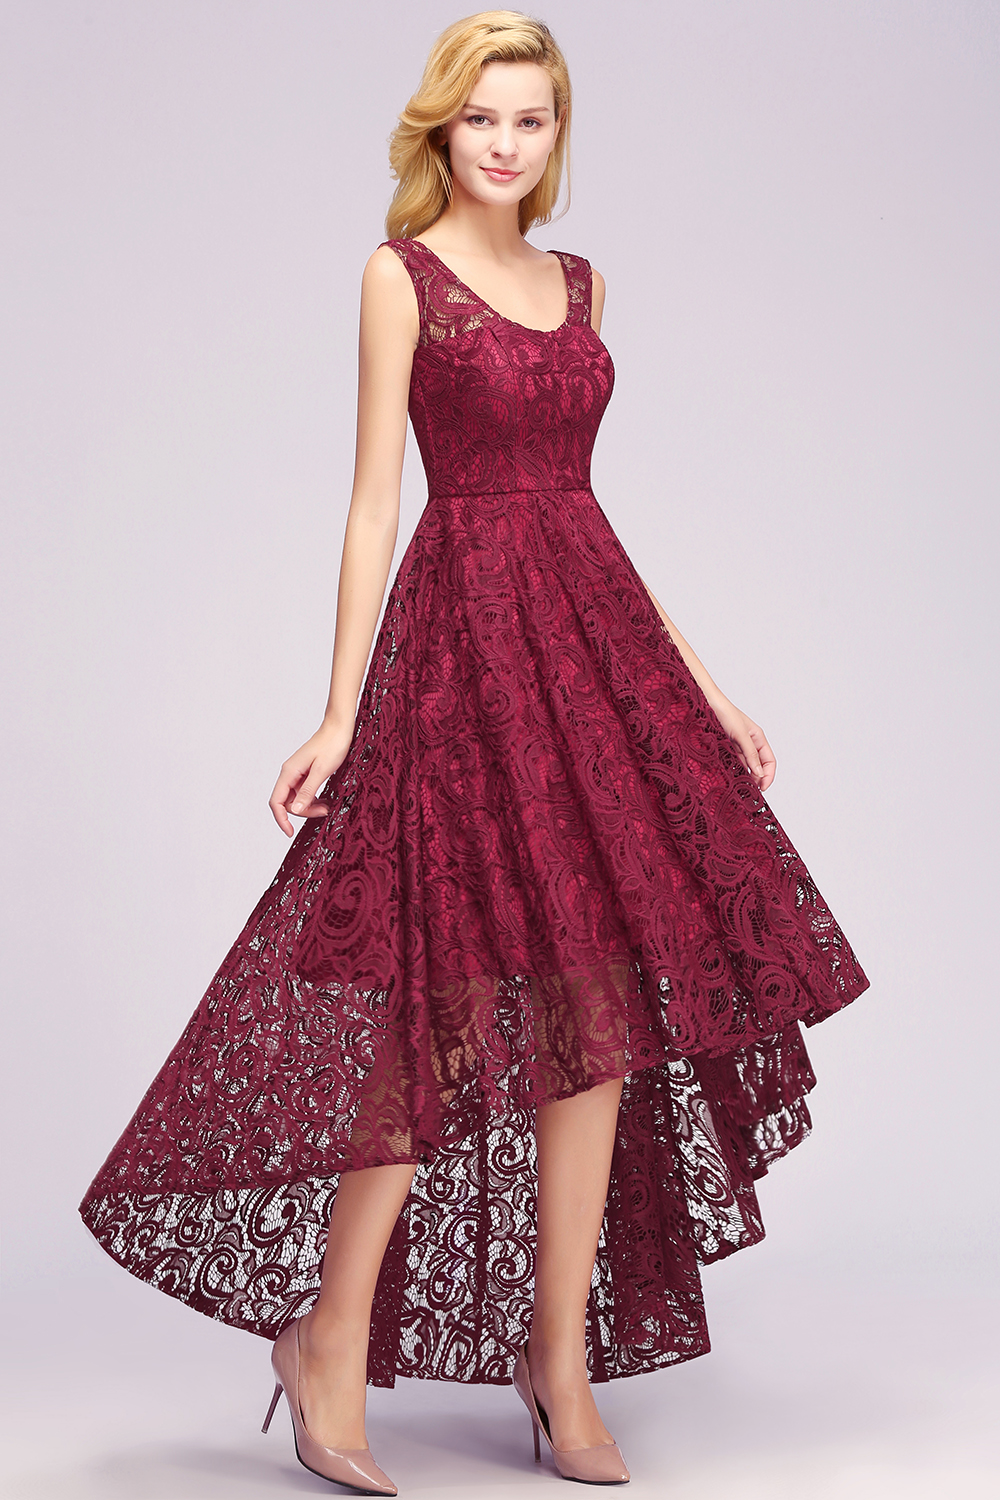 2019 Burgundy Lace Short Prom Dresses High Low Sleeveless Prom Gown Vestido de festa in Prom Dresses from Weddings Events